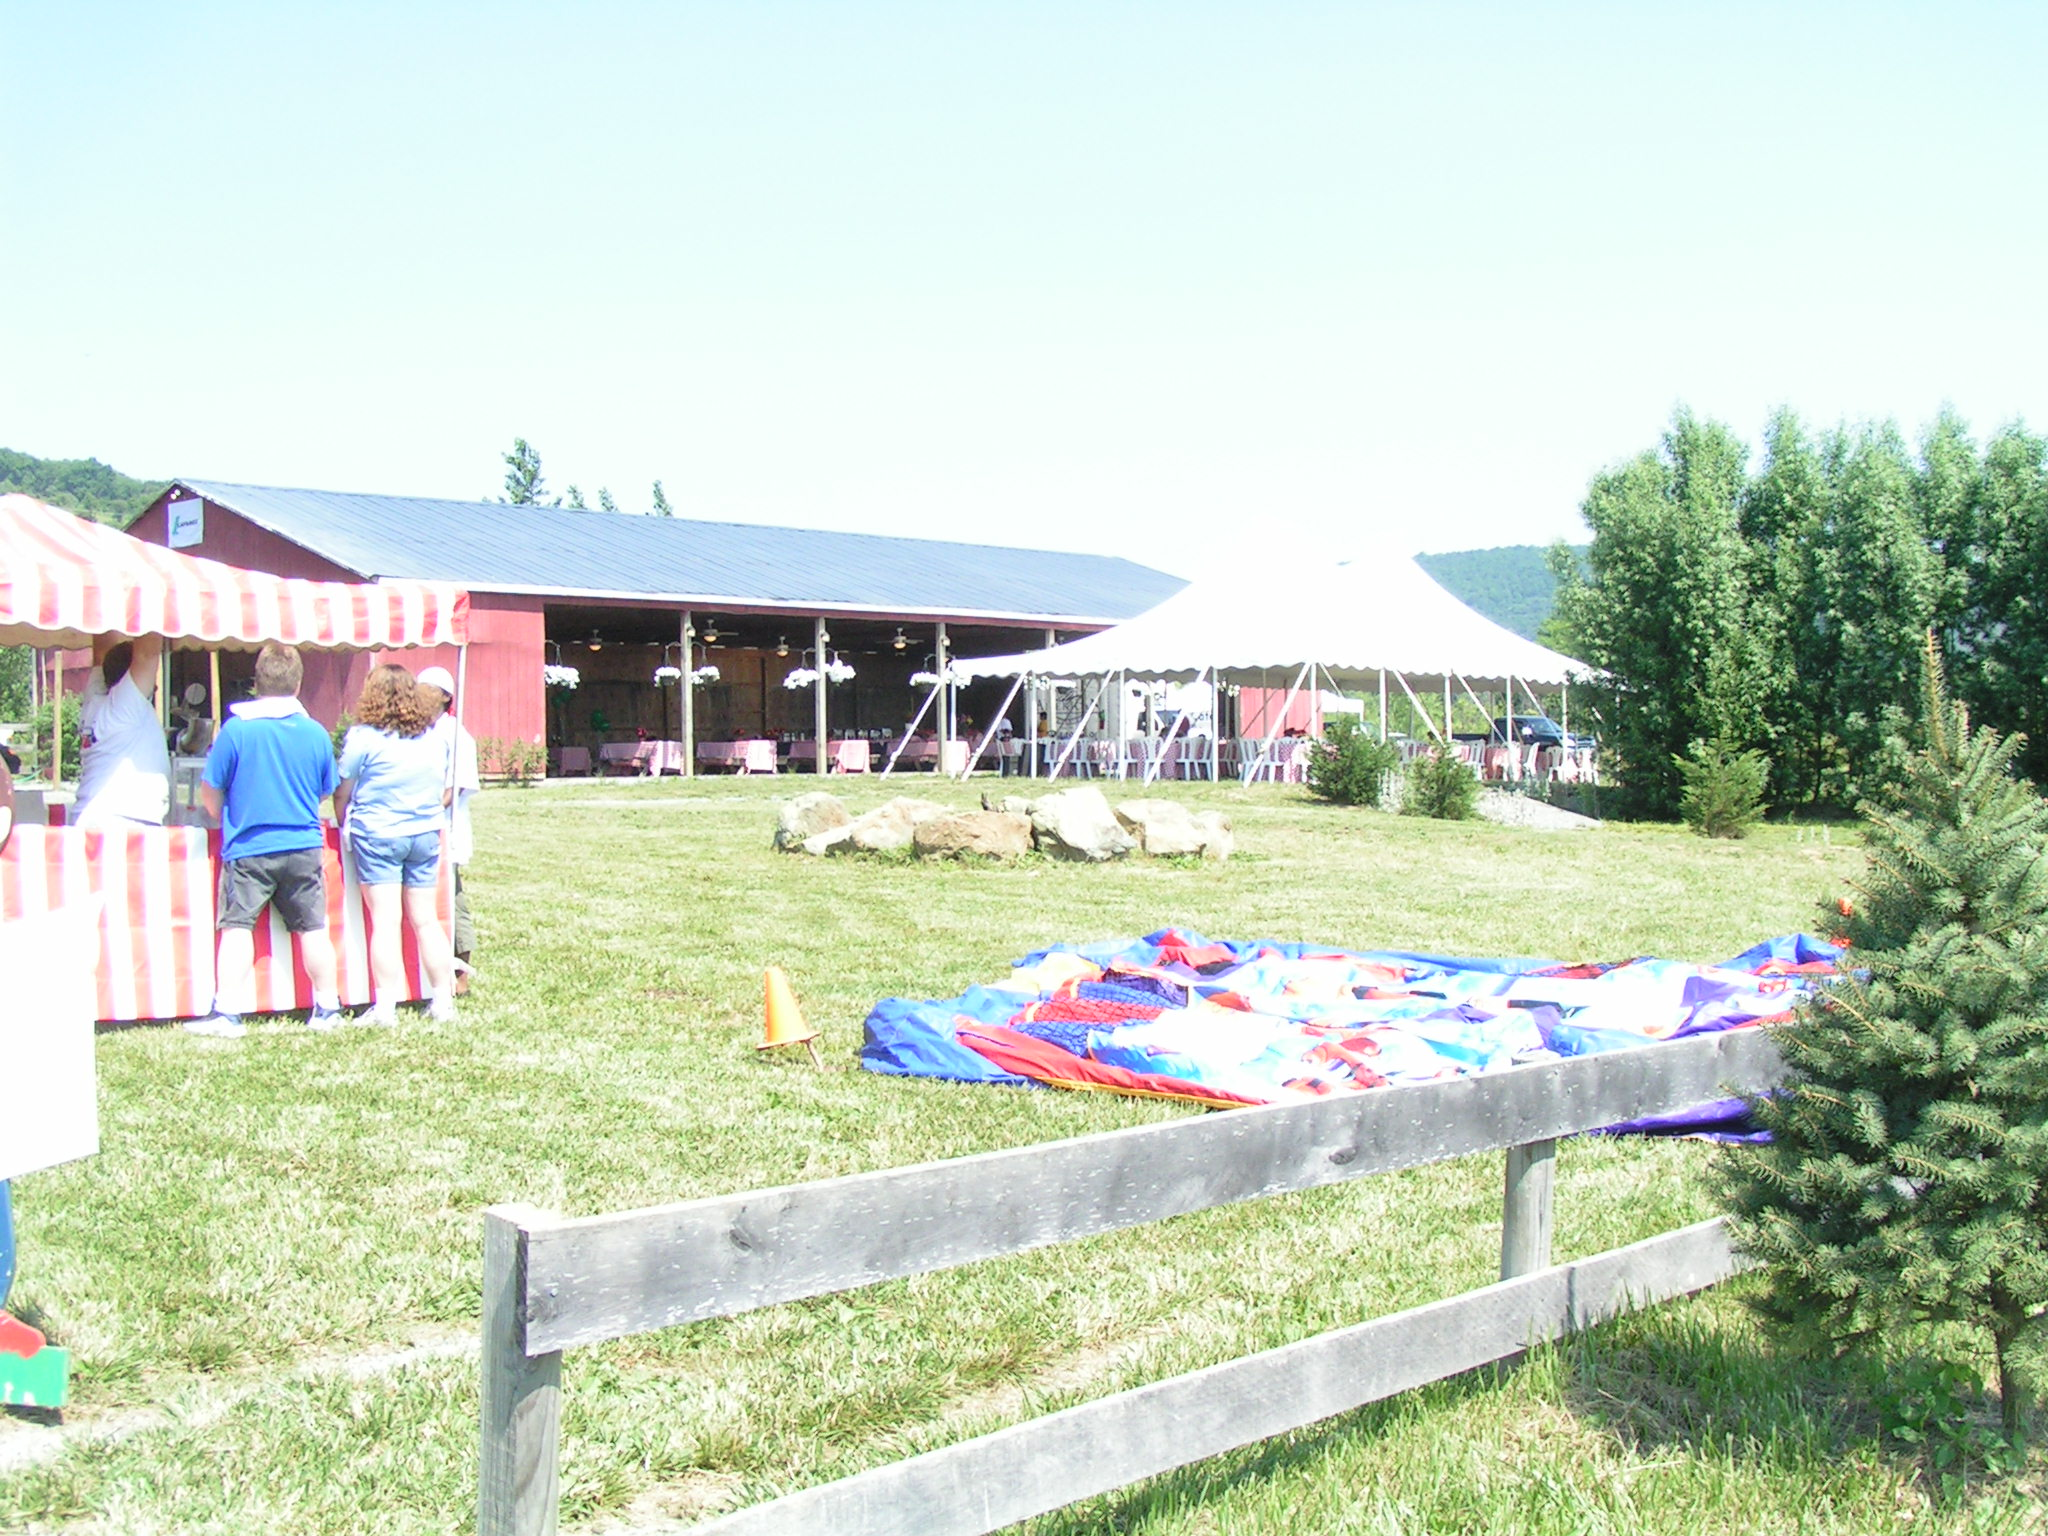 The Big Red Barn Picnic Site Venue For Rent In Bluemont